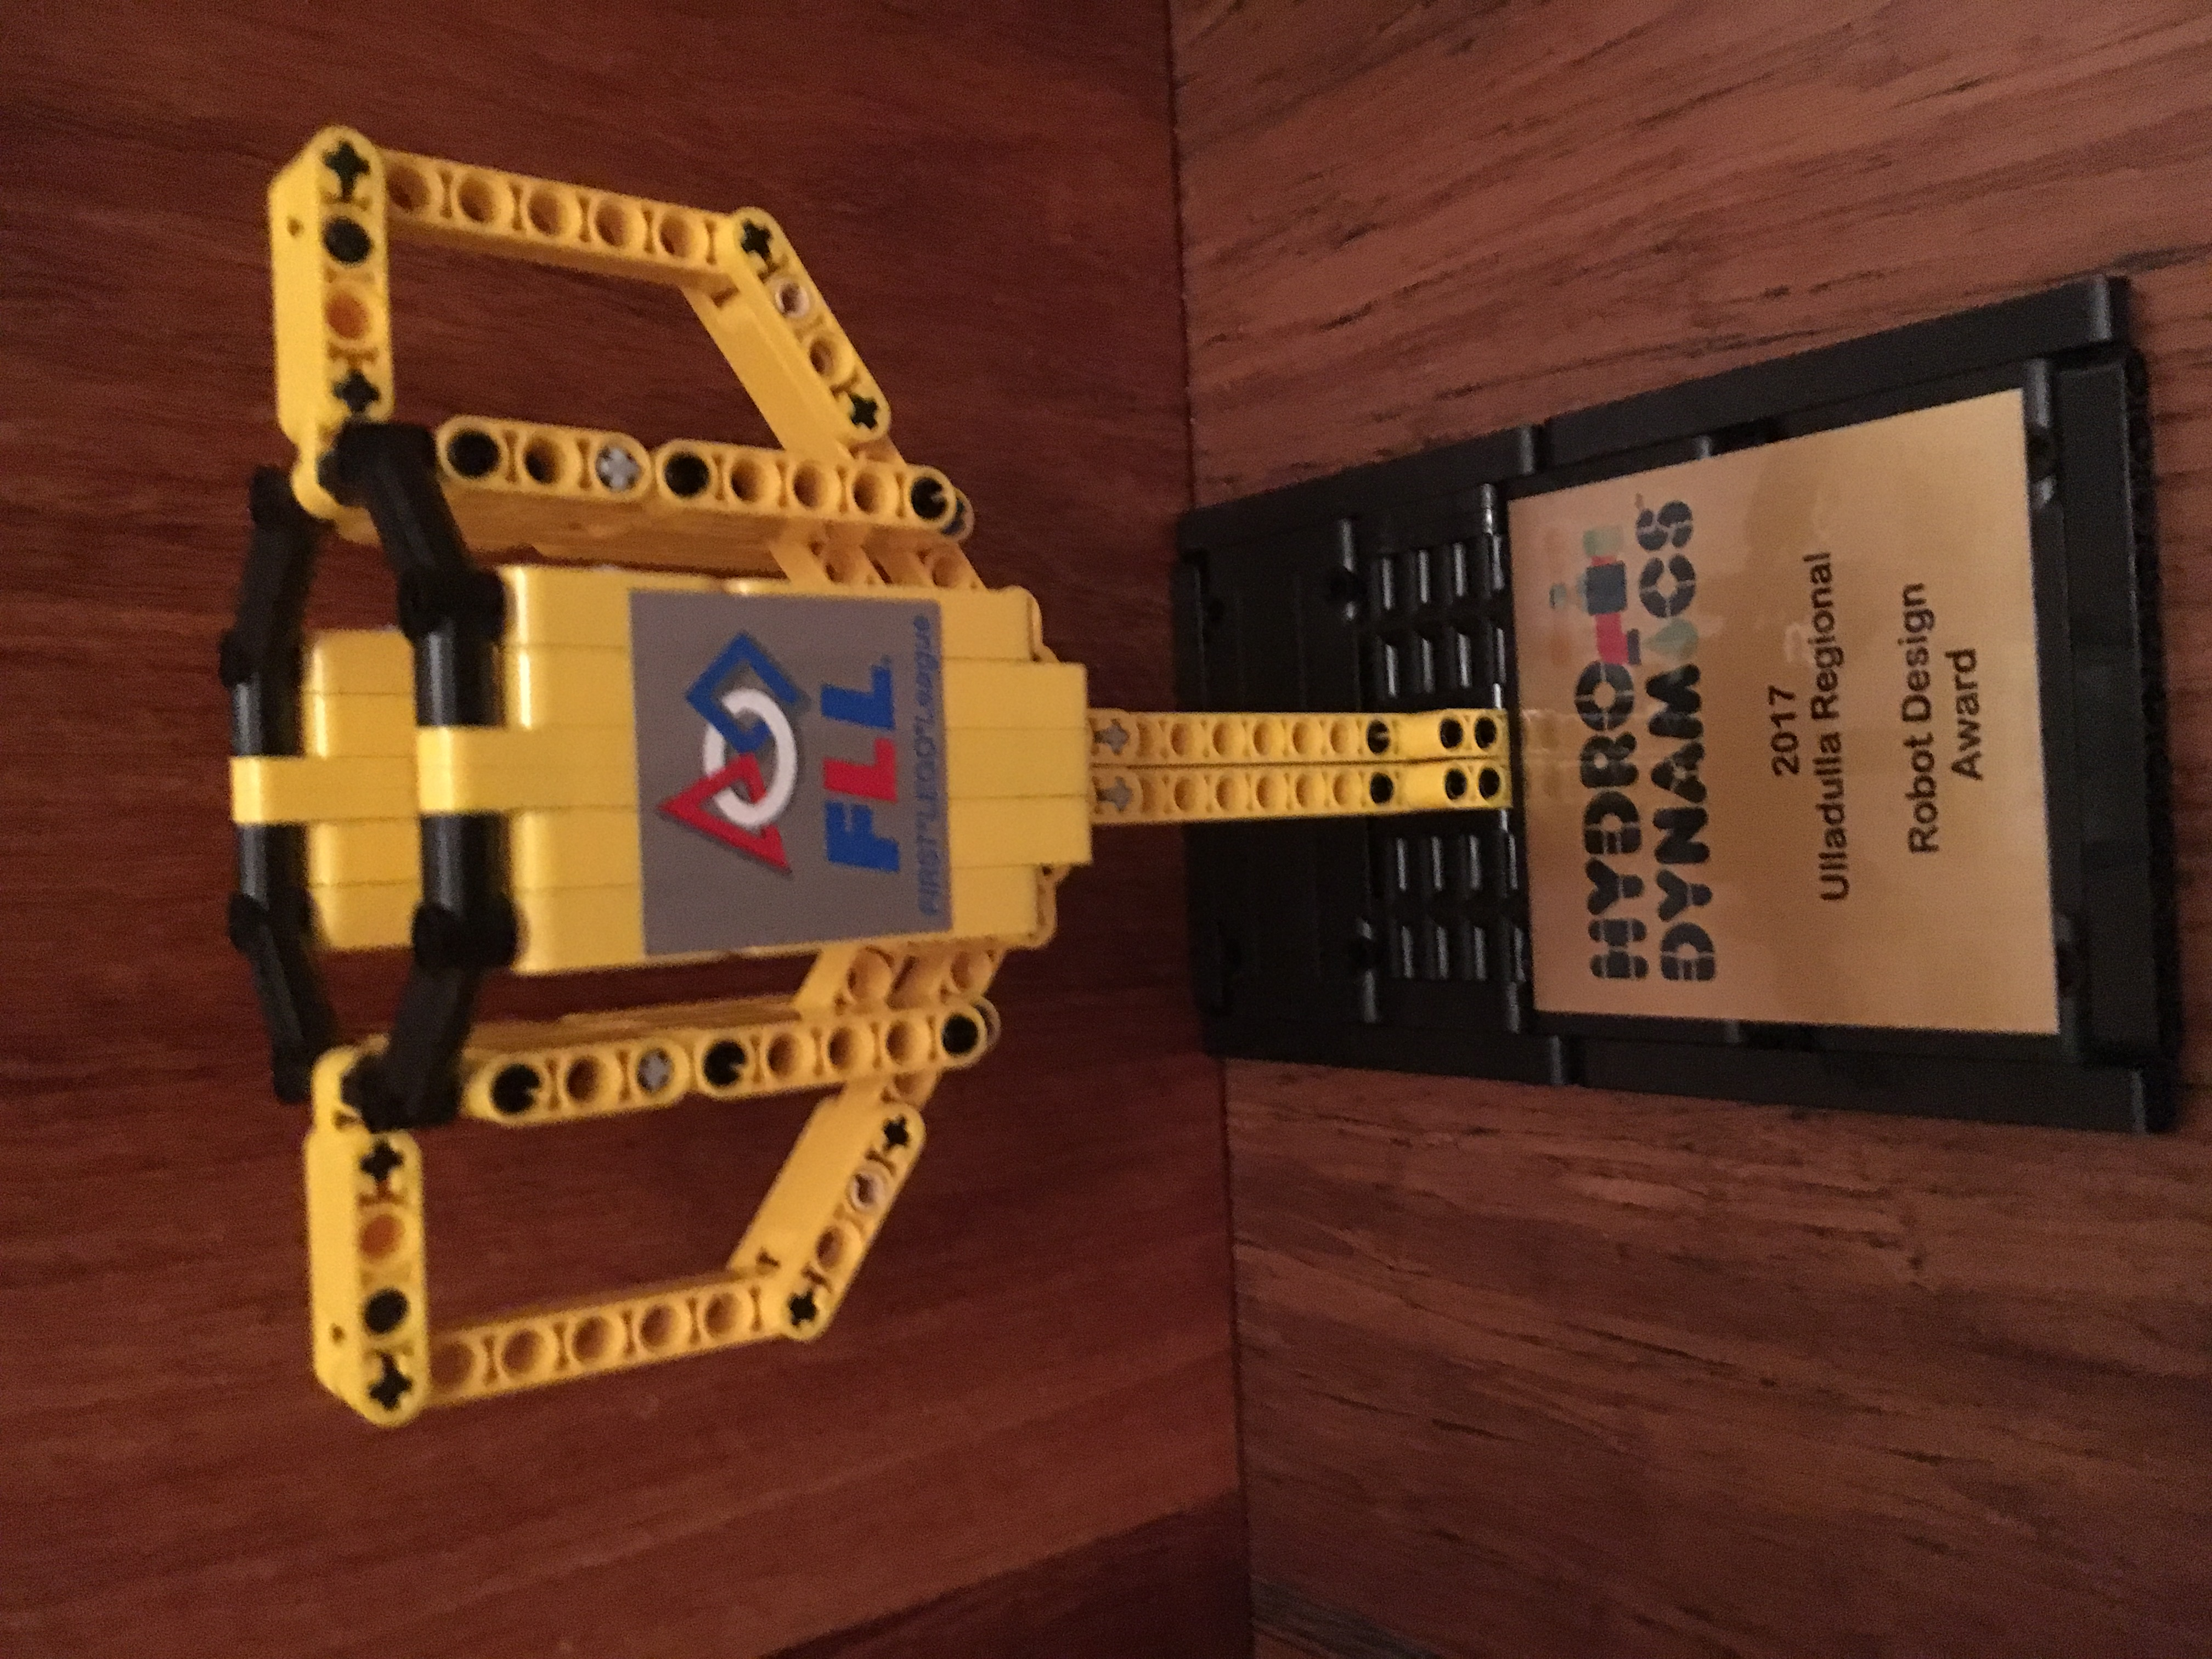 Robot Design Award